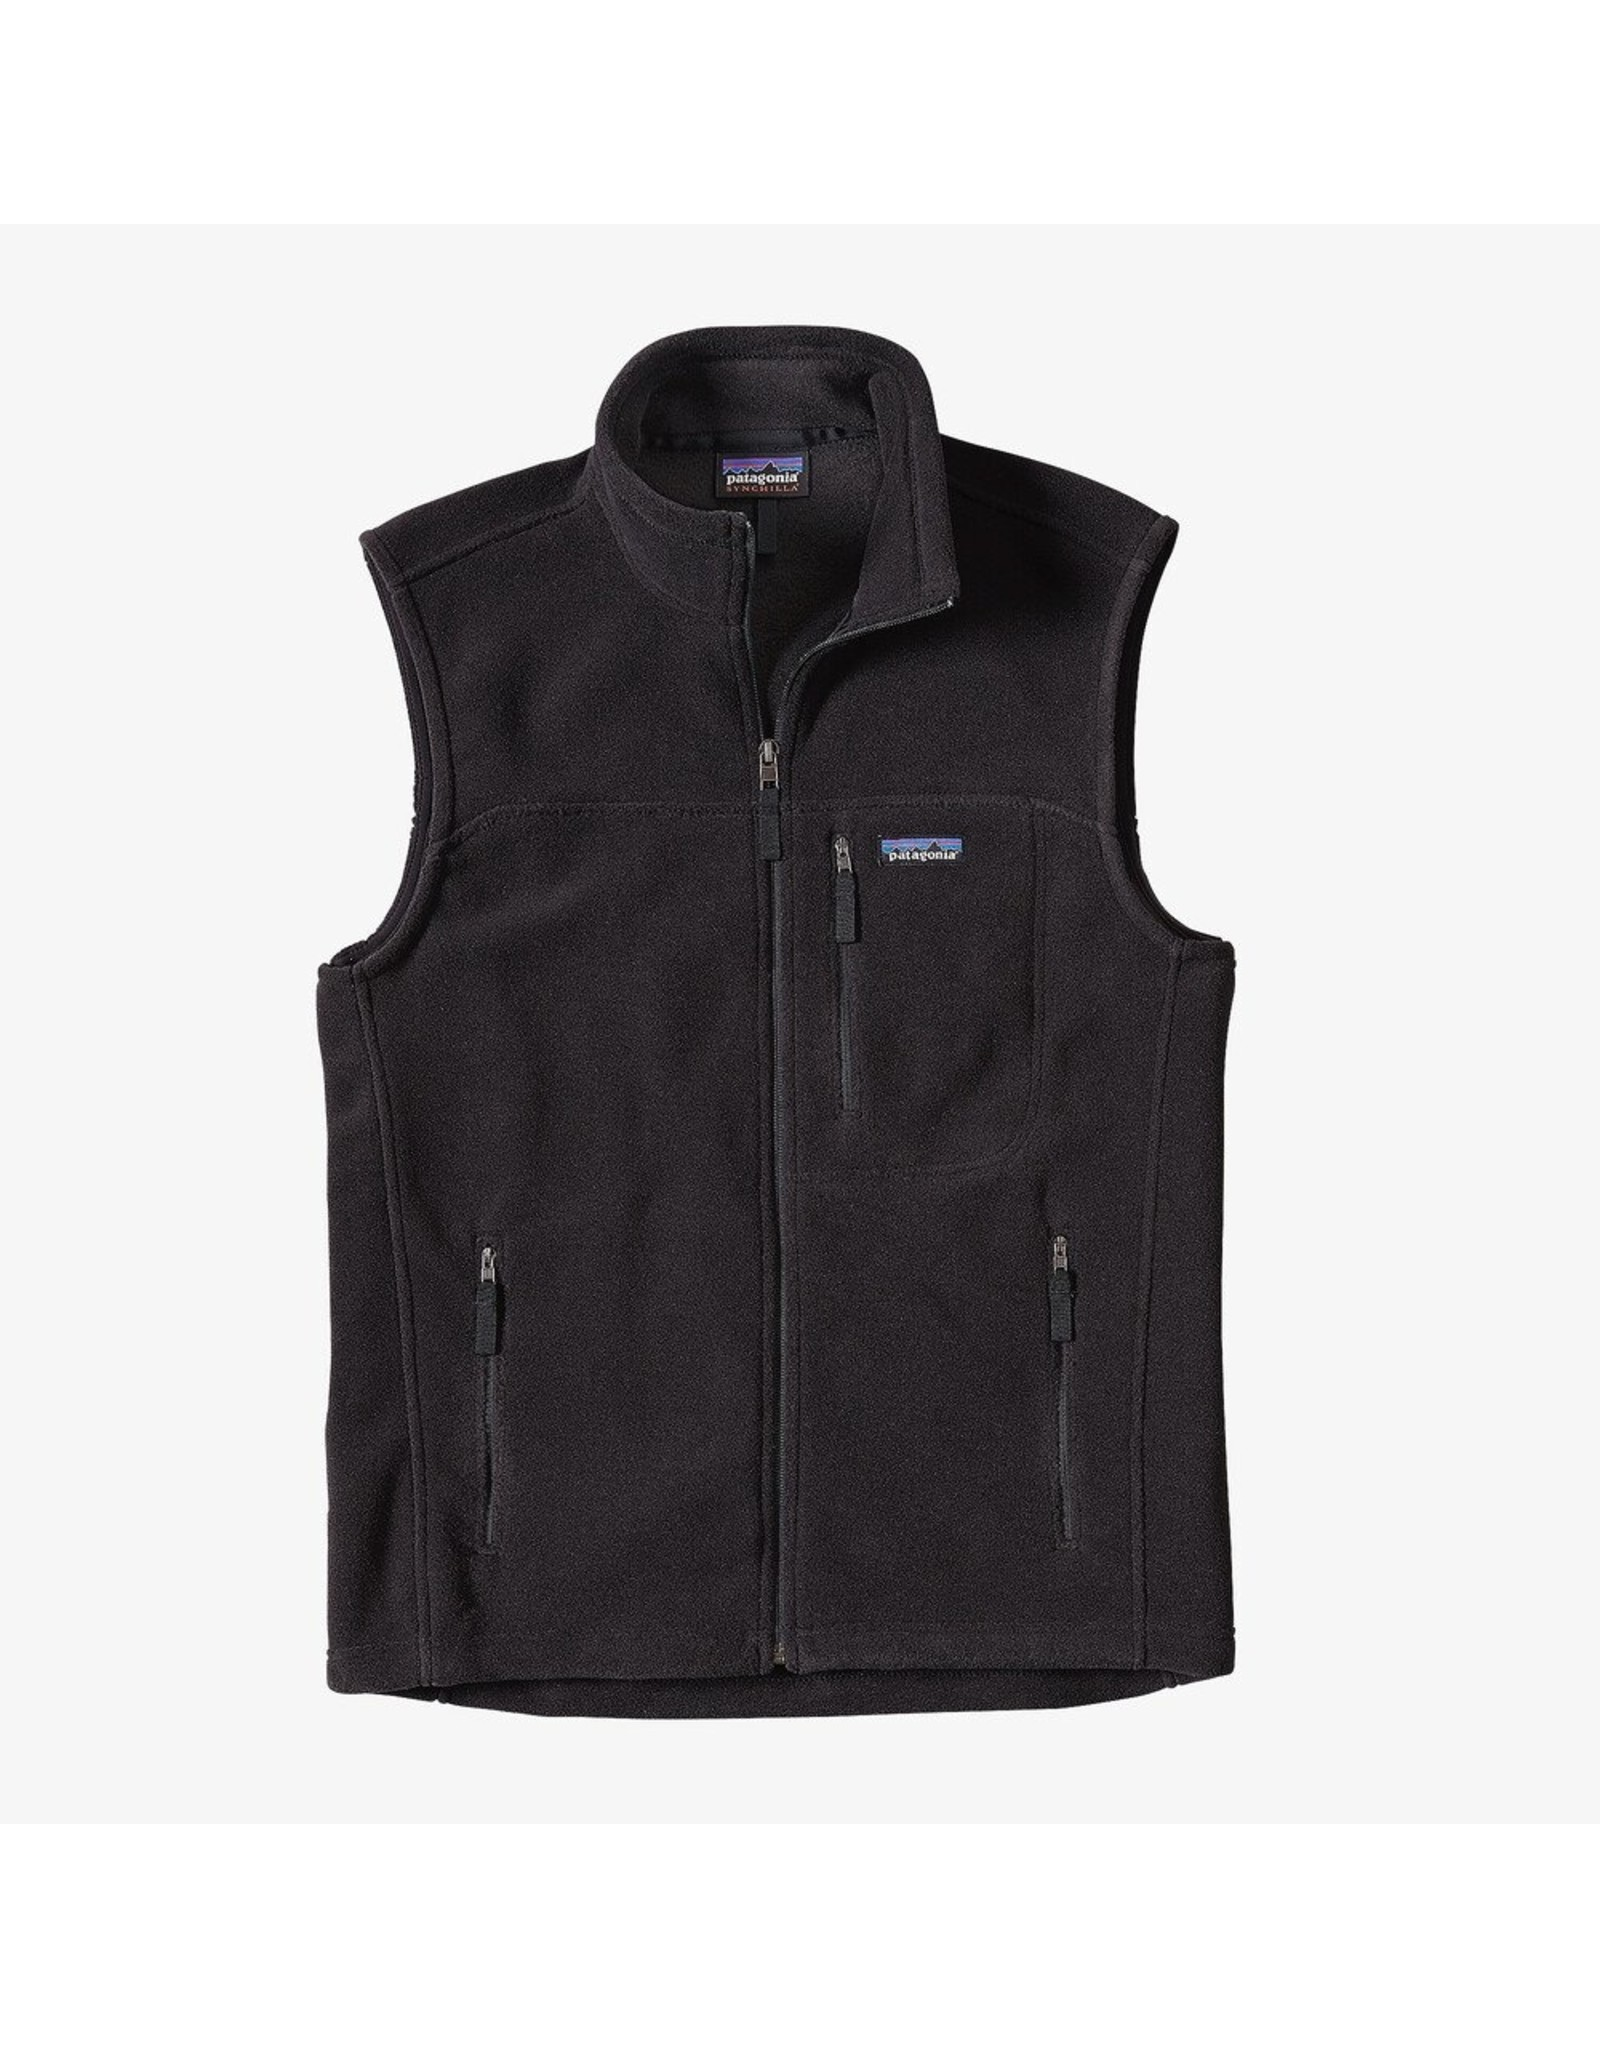 Patagonia Patagonia - M's Classic Synch Vest